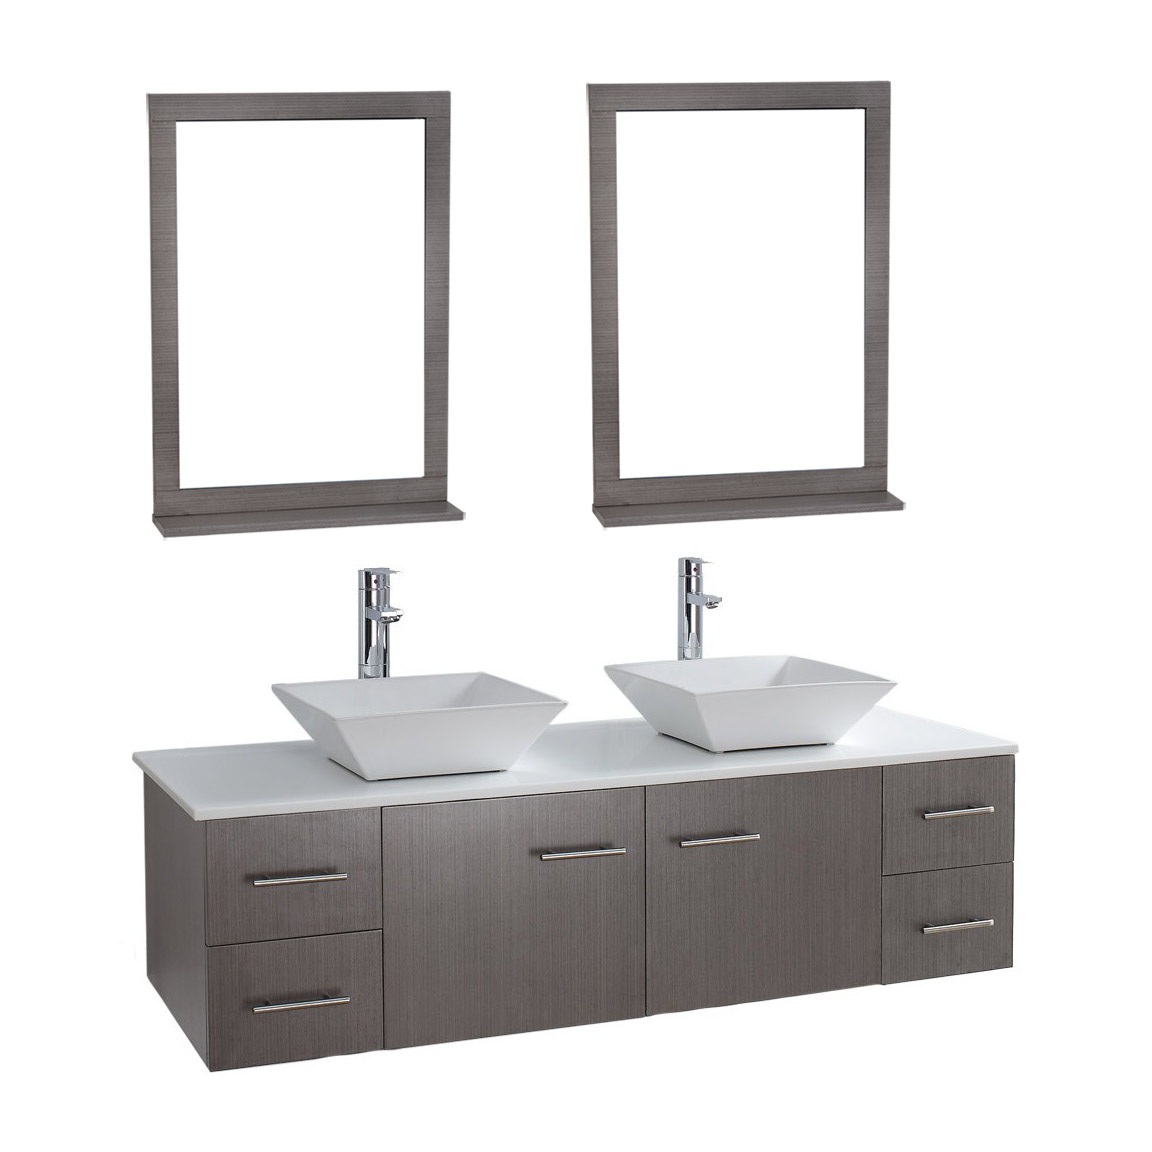 Siena Solid Wood 71 Wall Mounted Double Bathroom Vanity